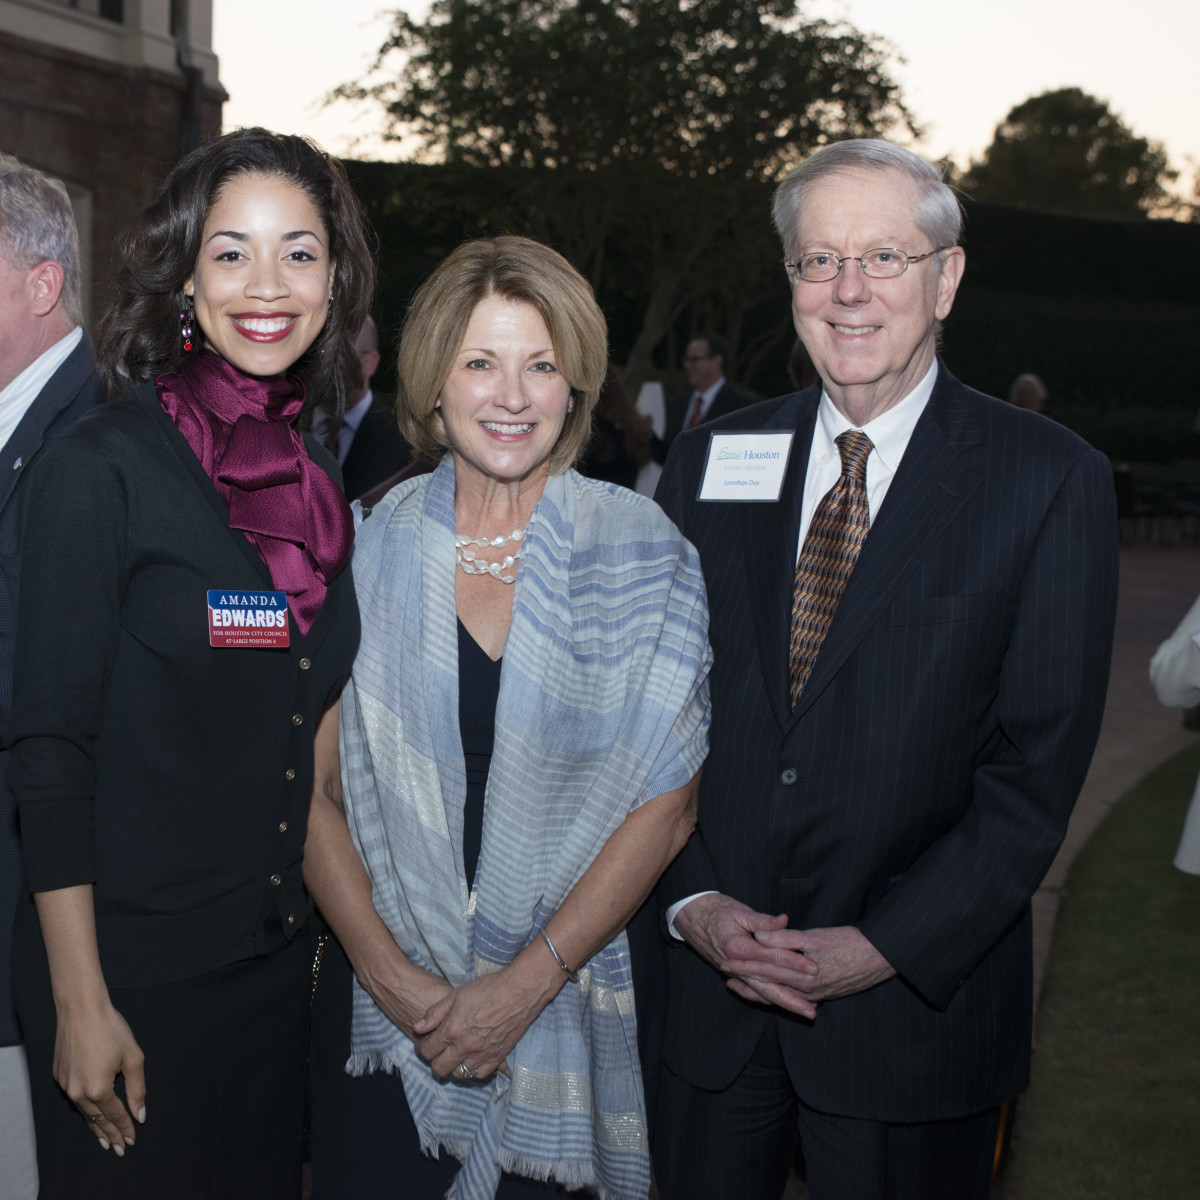 News, Shelby, Scenic Houston dinner, Oct. 3015,  Amanda Edwards, Claudia Williamson, Jonathan Day